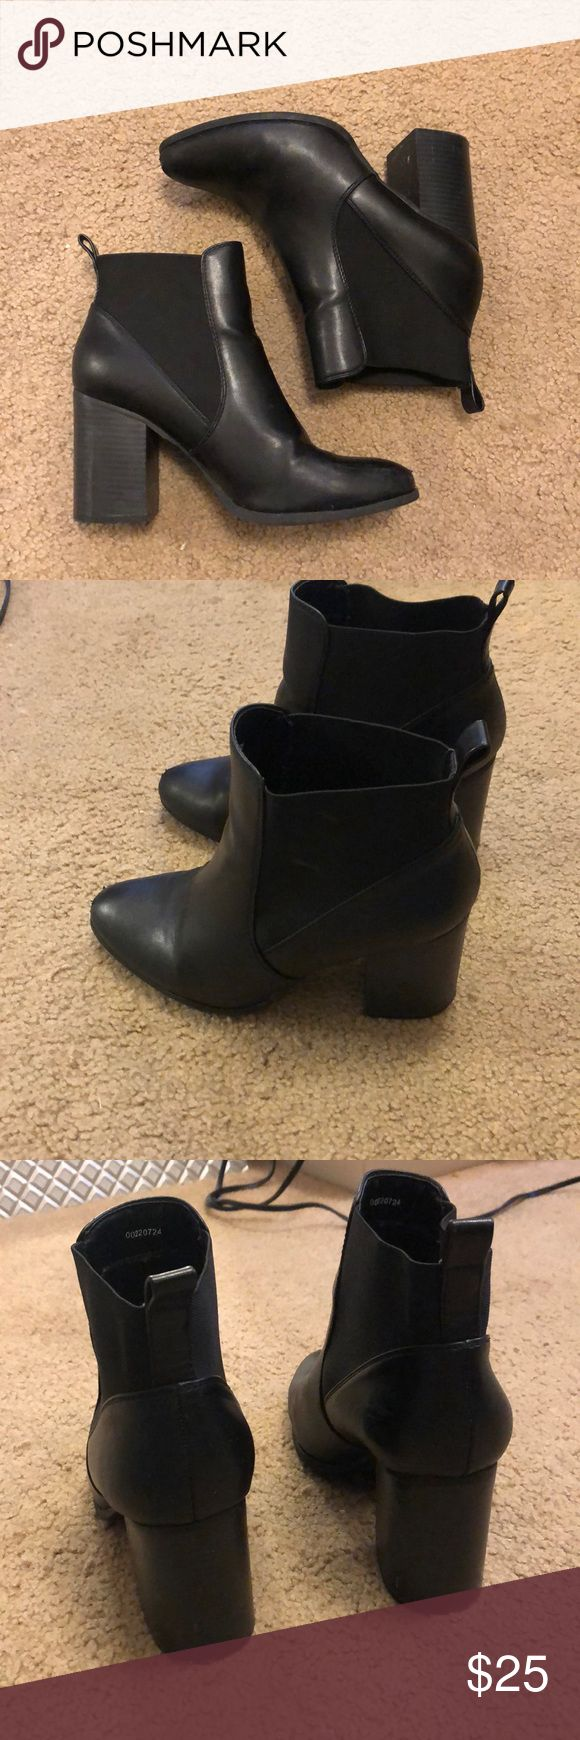 Black Leather Heeled Booties These are great booties for going out or pairing with a cute outfit! For heels these are super comfortable and are super …